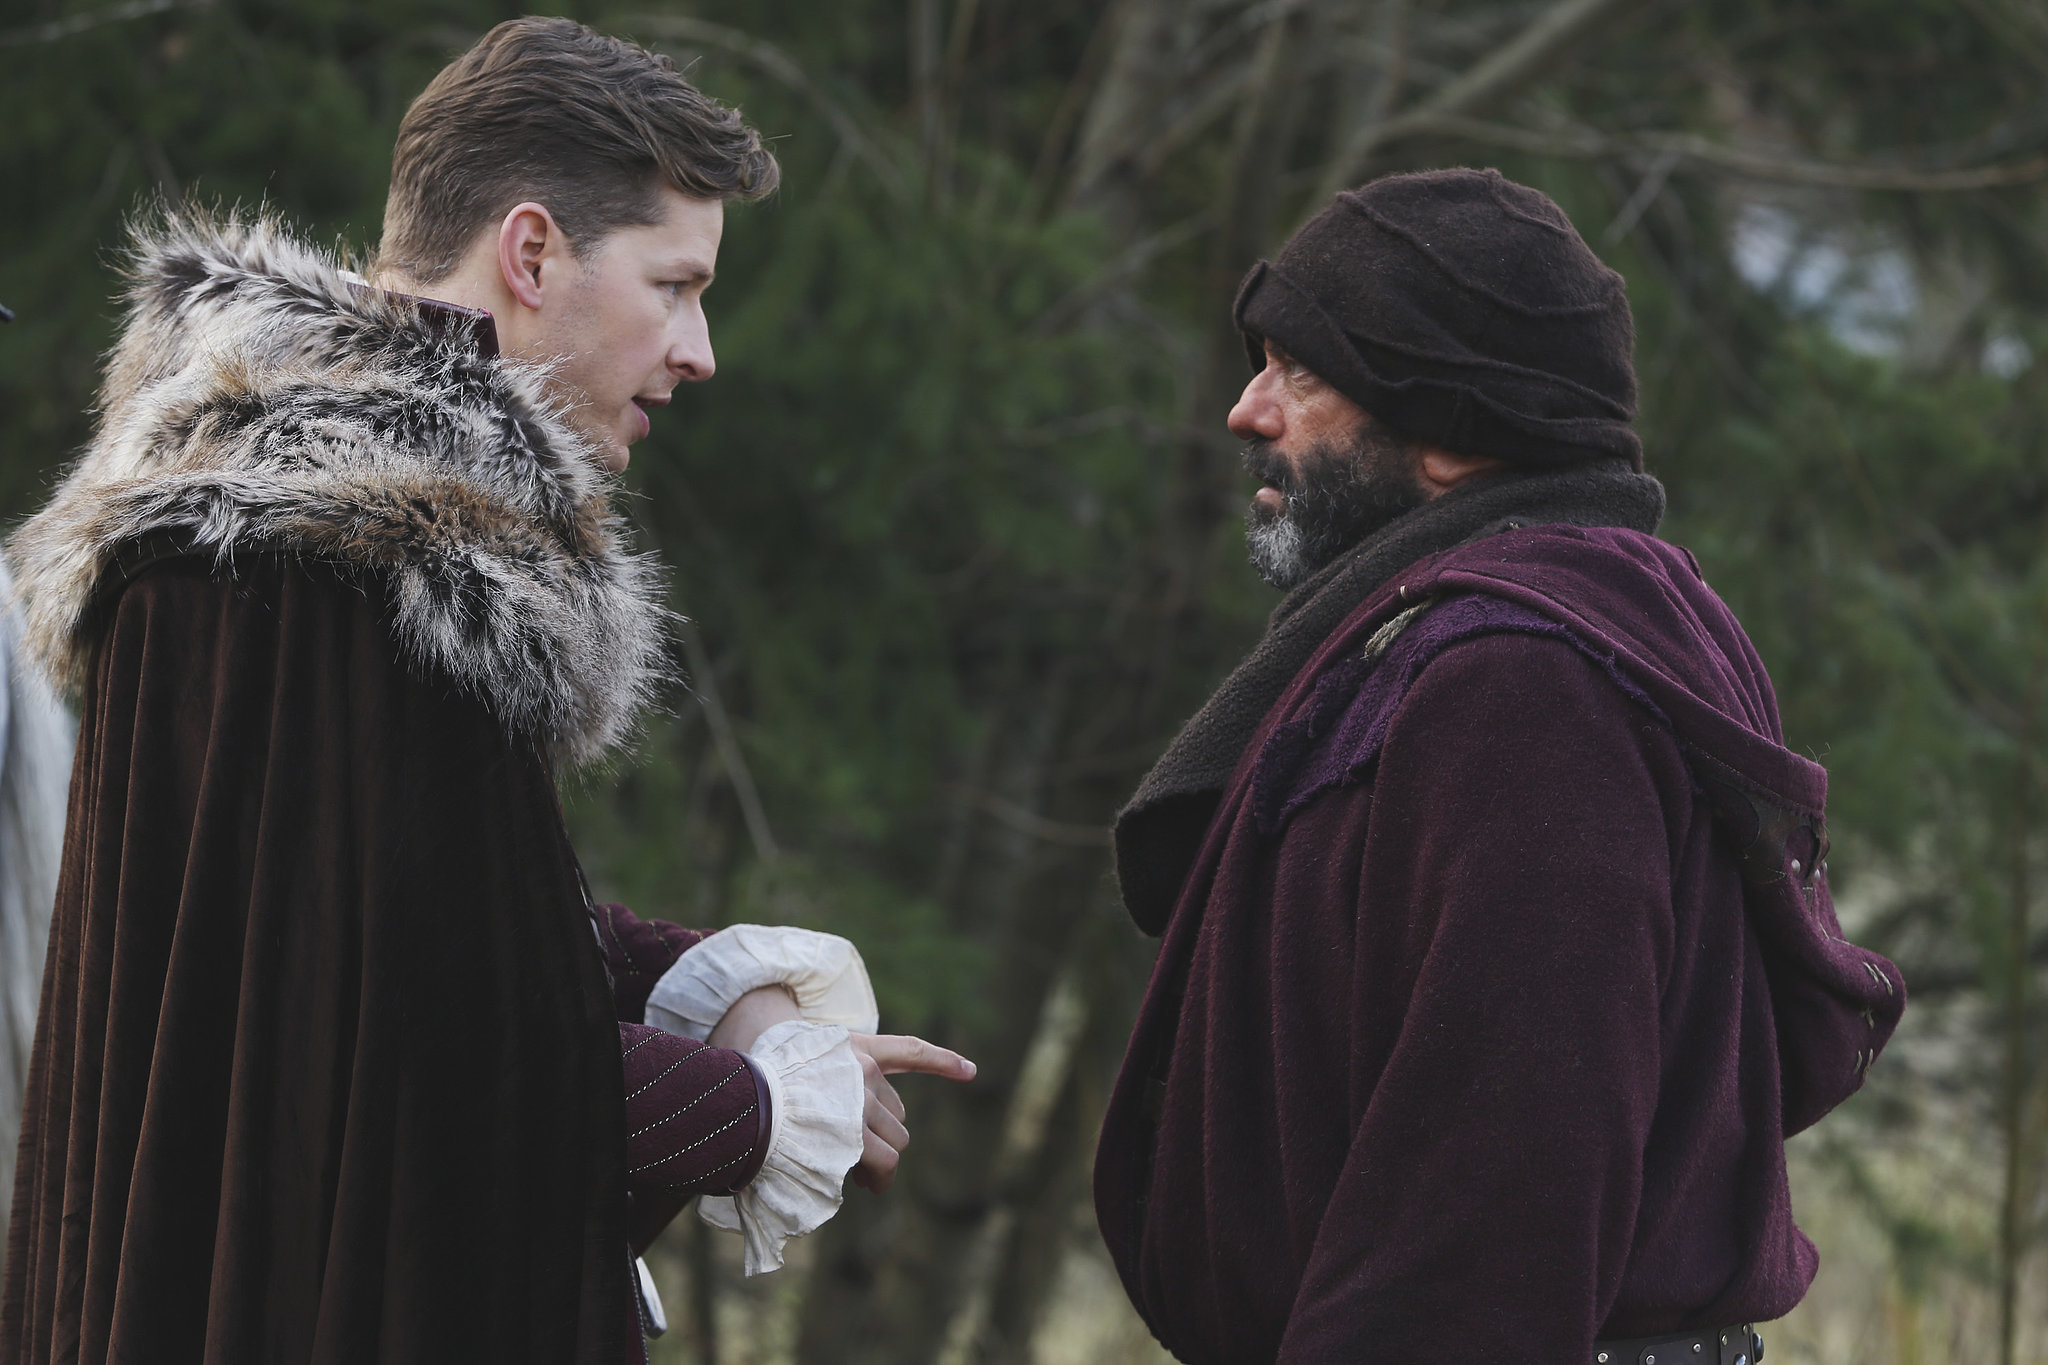 Charming and Grumpy have their own meeting.